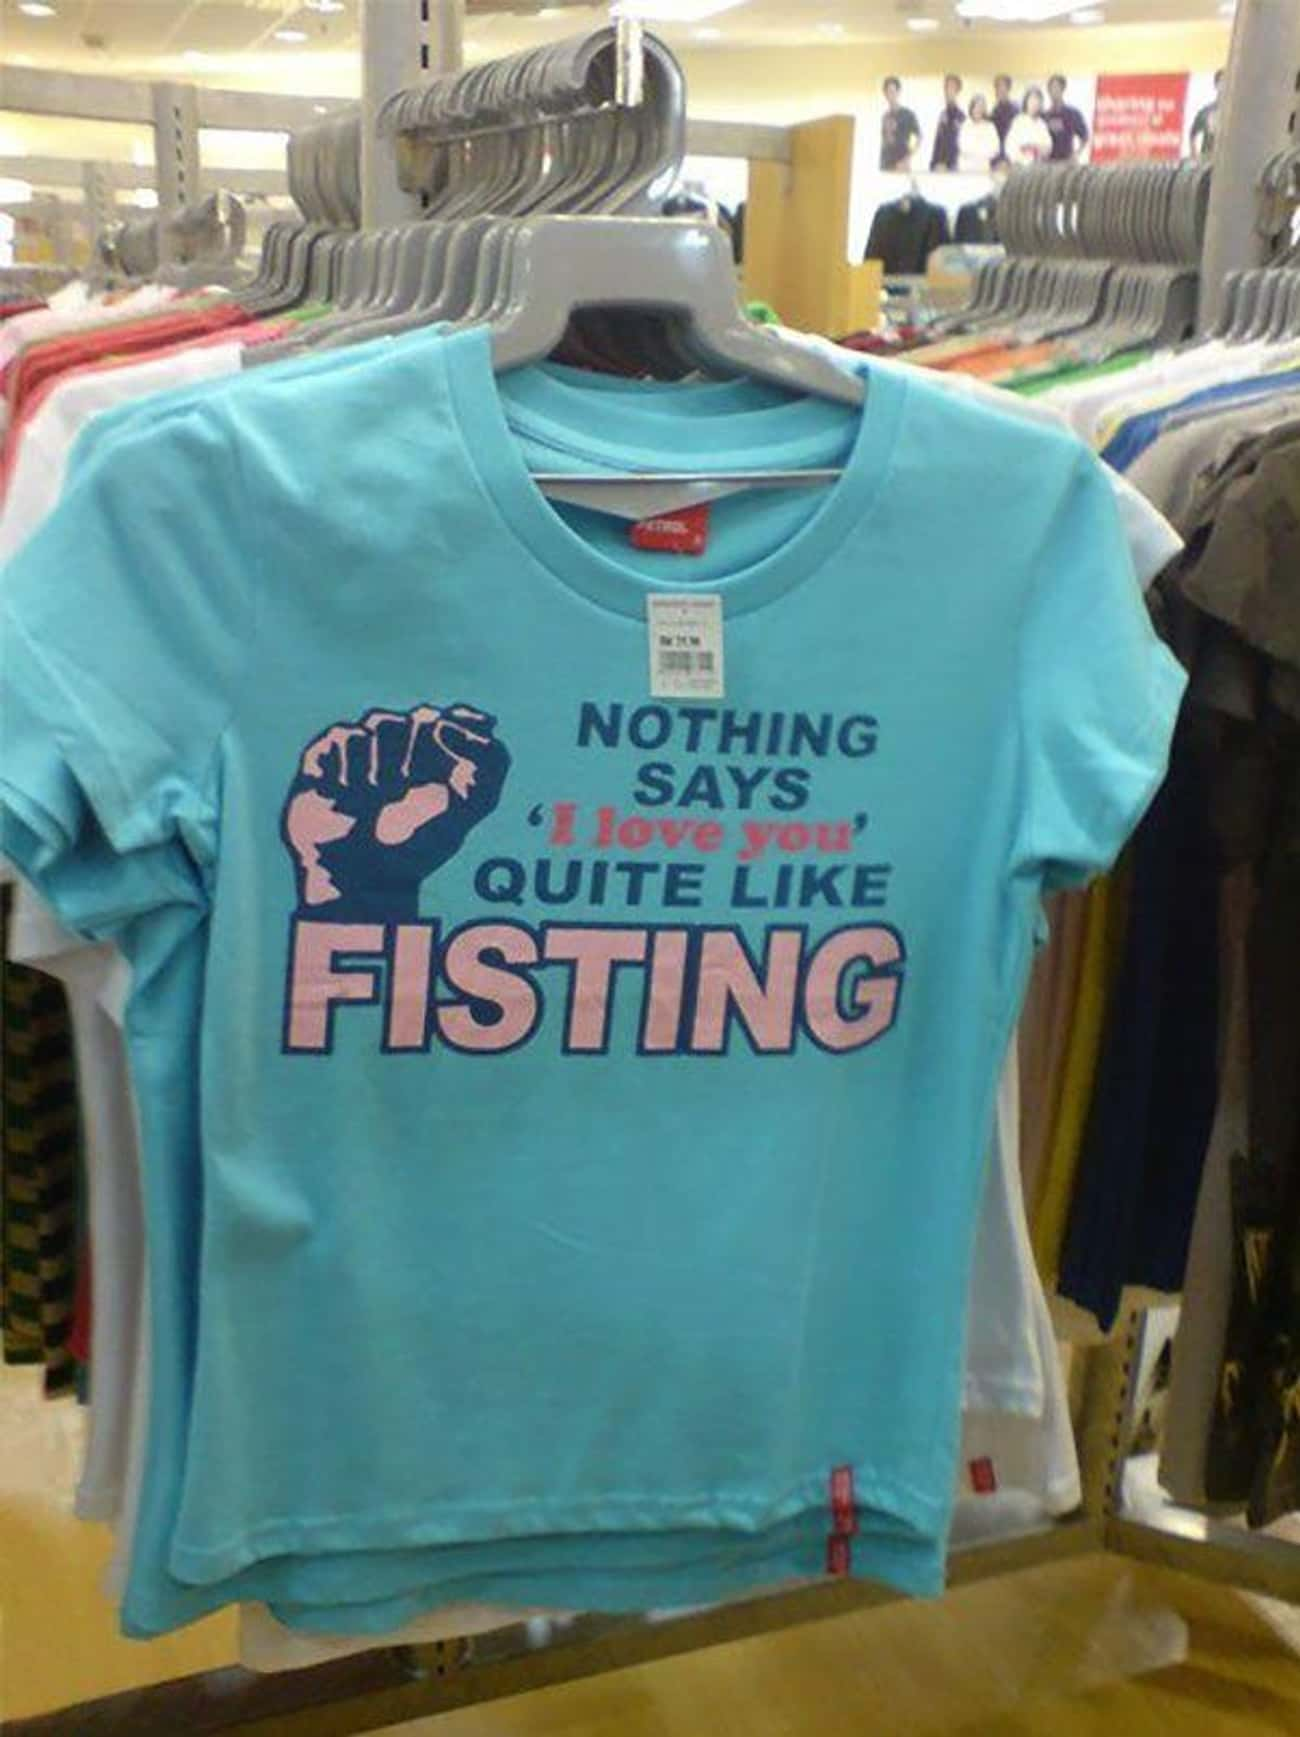 Sh*t Just Got Real At The Wal- is listed (or ranked) 4 on the list 18 Hilarious Times Clothing Went Horribly Wrong